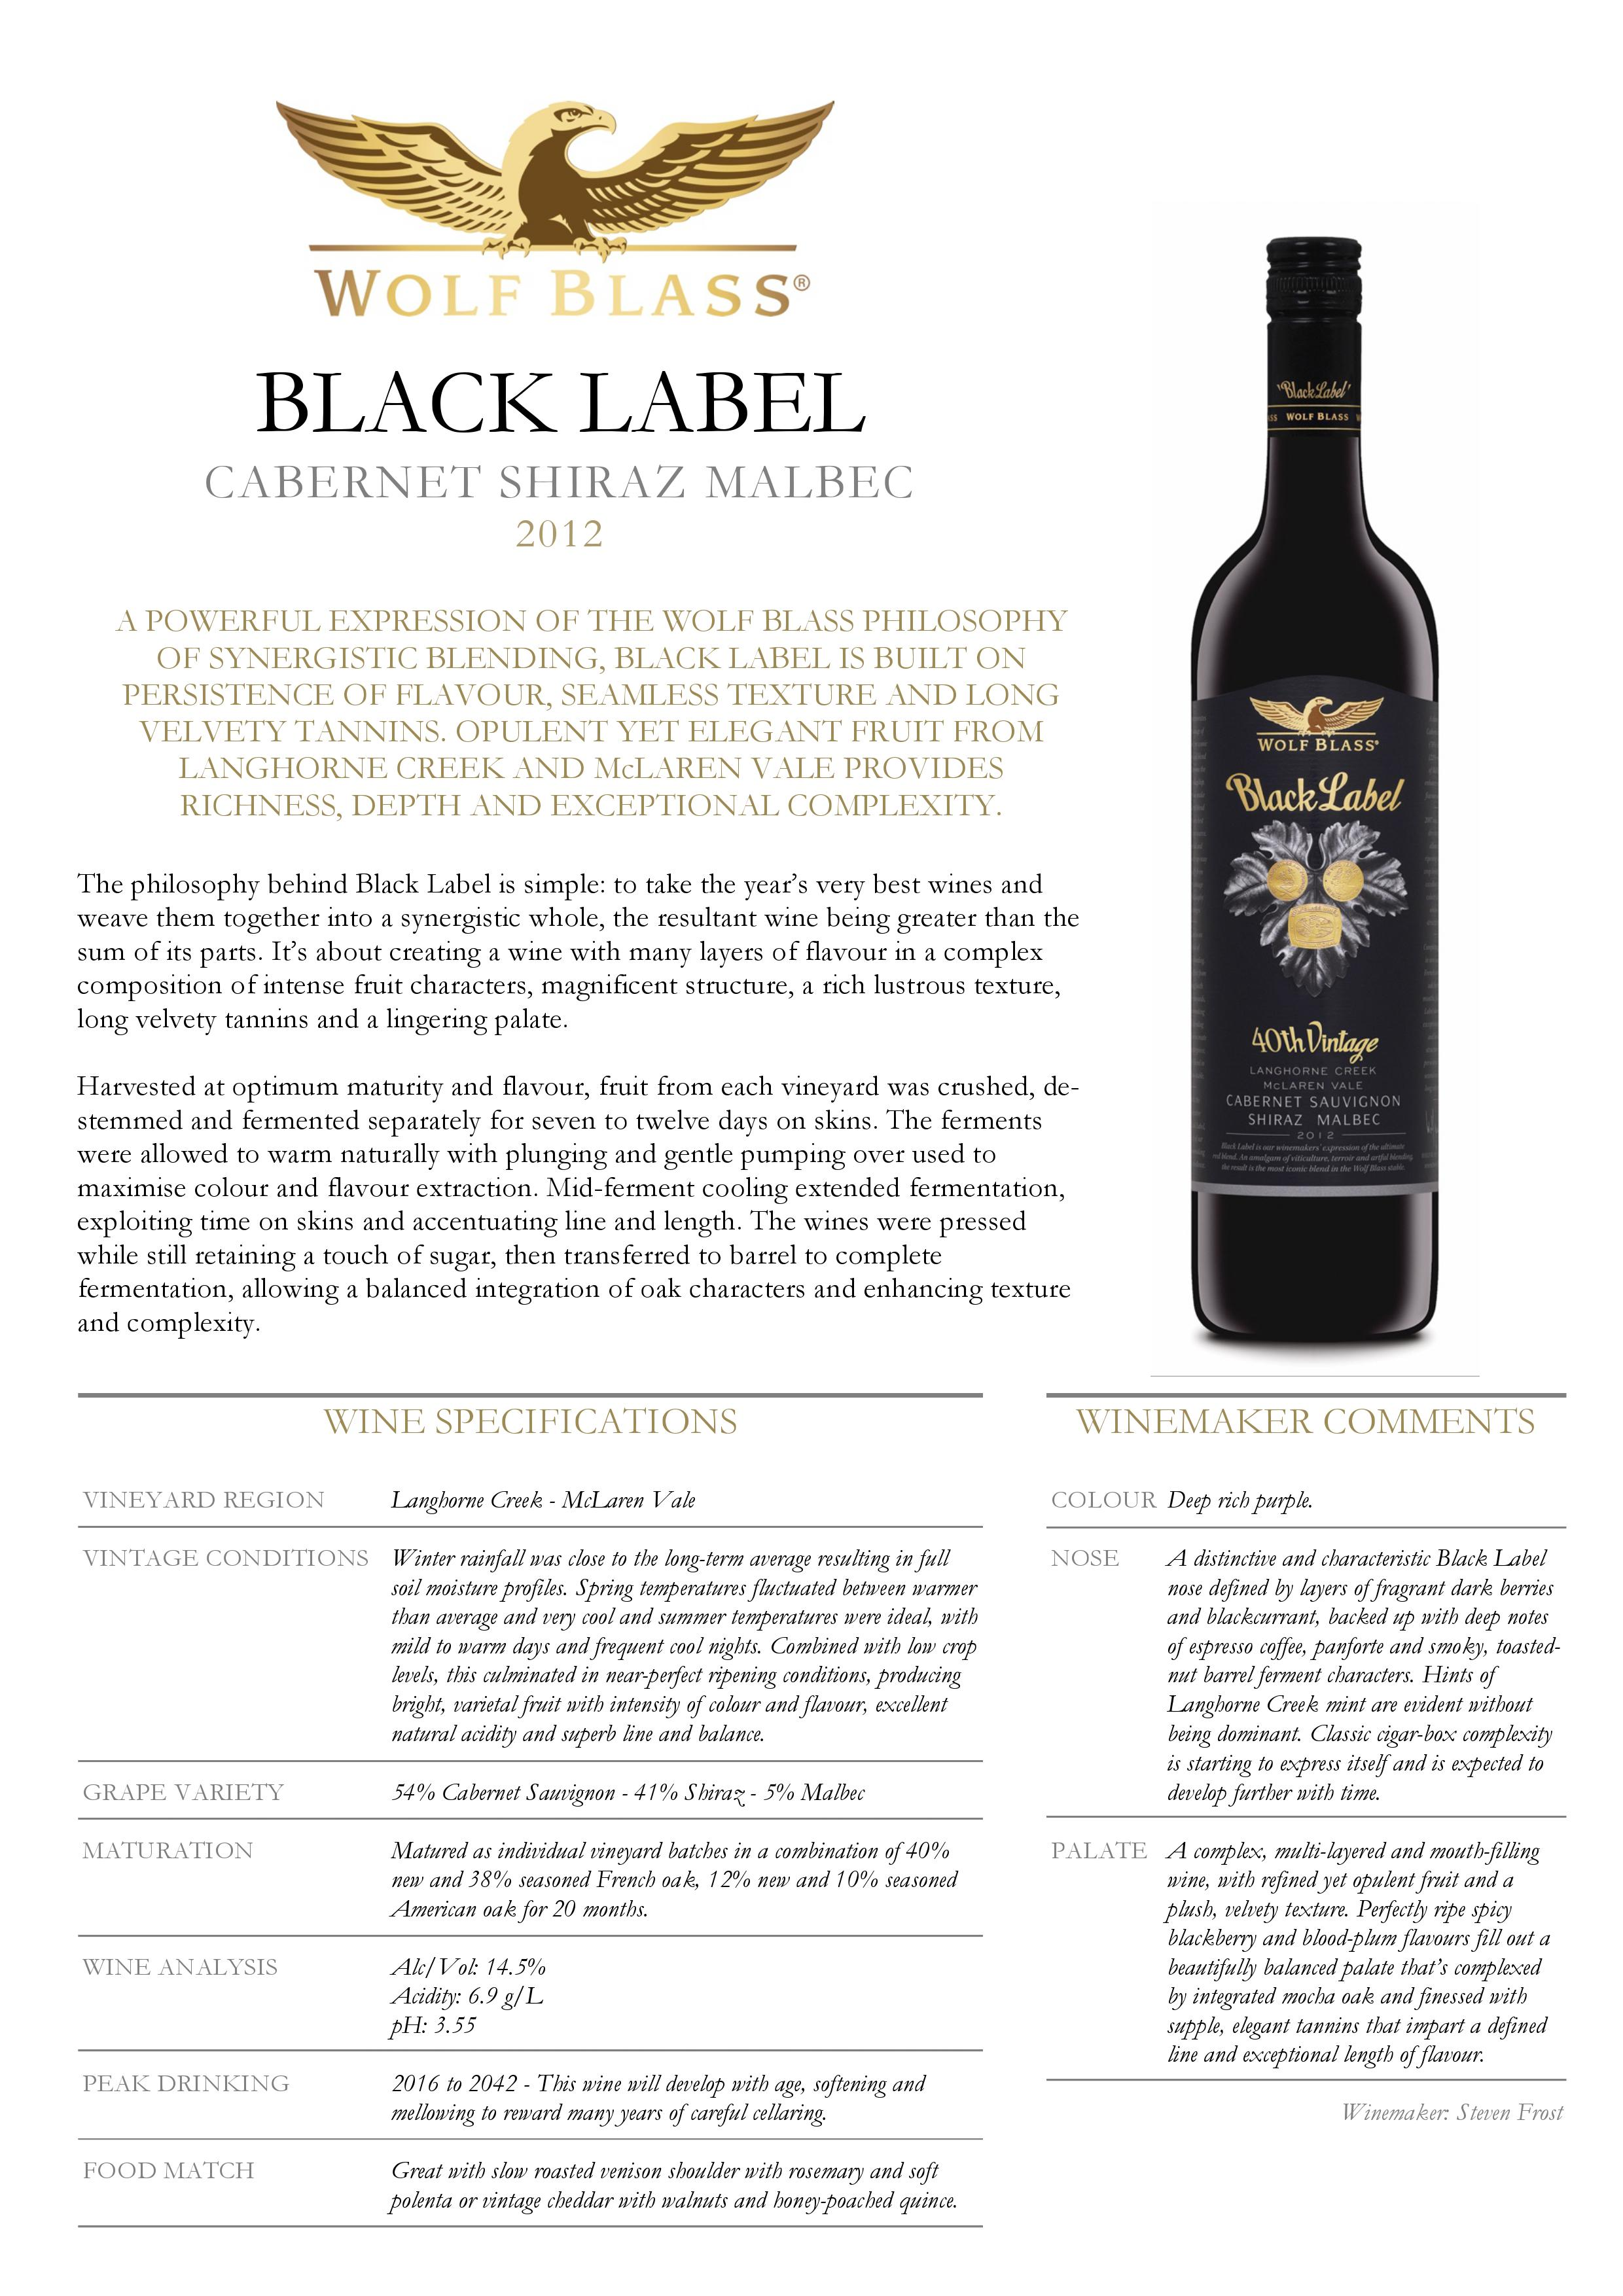 Wolf Blass Black Label Cabernet Sauvignon Shiraz Malbec 2012 A POWERFUL EXPRESSION OF THE WOLF BLASS PHILOSOPHY OF SYNERGISTIC BLENDING, BLACK LABEL IS BUILT ON PERSISTENCE OF FLAVOUR, SEAMLESS TEXTURE AND LONG VELVETY TANNINS. OPULENT YET ELEGANT FRUIT FROM LANGHORNE CREEK AND McLAREN VALE PROVIDES RICHNESS, DEPTH AND EXCEPTIONAL COMPLEXITY. The philosophy behind Black Label is simple: to take the year's very best wines and weave them together into a synergistic whole, the resultant wine being greater than the sum of its parts. It's about creating a wine with many layers of flavour in a complex composition of intense fruit characters, magnificent structure, a rich lustrous texture, long velvety tannins and a lingering palate. Harvested at optimum maturity and flavour, fruit from each vineyard was crushed, destemmed and fermented separately for seven to twelve days on skins. The ferments were allowed to warm naturally with plunging and gentle pumping over used to maximise colour and flavour extraction. Mid-ferment cooling extended fermentation, exploiting time on skins and accentuating line and length. The wines were pressed while still retaining a touch of sugar, then transferred to barrel to complete fermentation, allowing a balanced integration of oak characters and enhancing texture and complexity. WINE SPECIFICATIONS VINEYARD REGION Langhorne Creek - McLaren Vale VINTAGE CONDITIONS Winter rainfall was close to the long-term average resulting in full soil moisture profiles. Spring temperatures fluctuated between warmer than average and very cool and summer temperatures were ideal, with mild to warm days and frequent cool nights. Combined with low crop levels, this culminated in near-perfect ripening conditions, producing bright, varietal fruit with intensity of colour and flavour, excellent natural acidity and superb line and balance. GRAPE VARIETY 54% Cabernet Sauvignon - 41% Shiraz - 5% Malbec MATURATION Matured as individual vineyard batches in a combination 